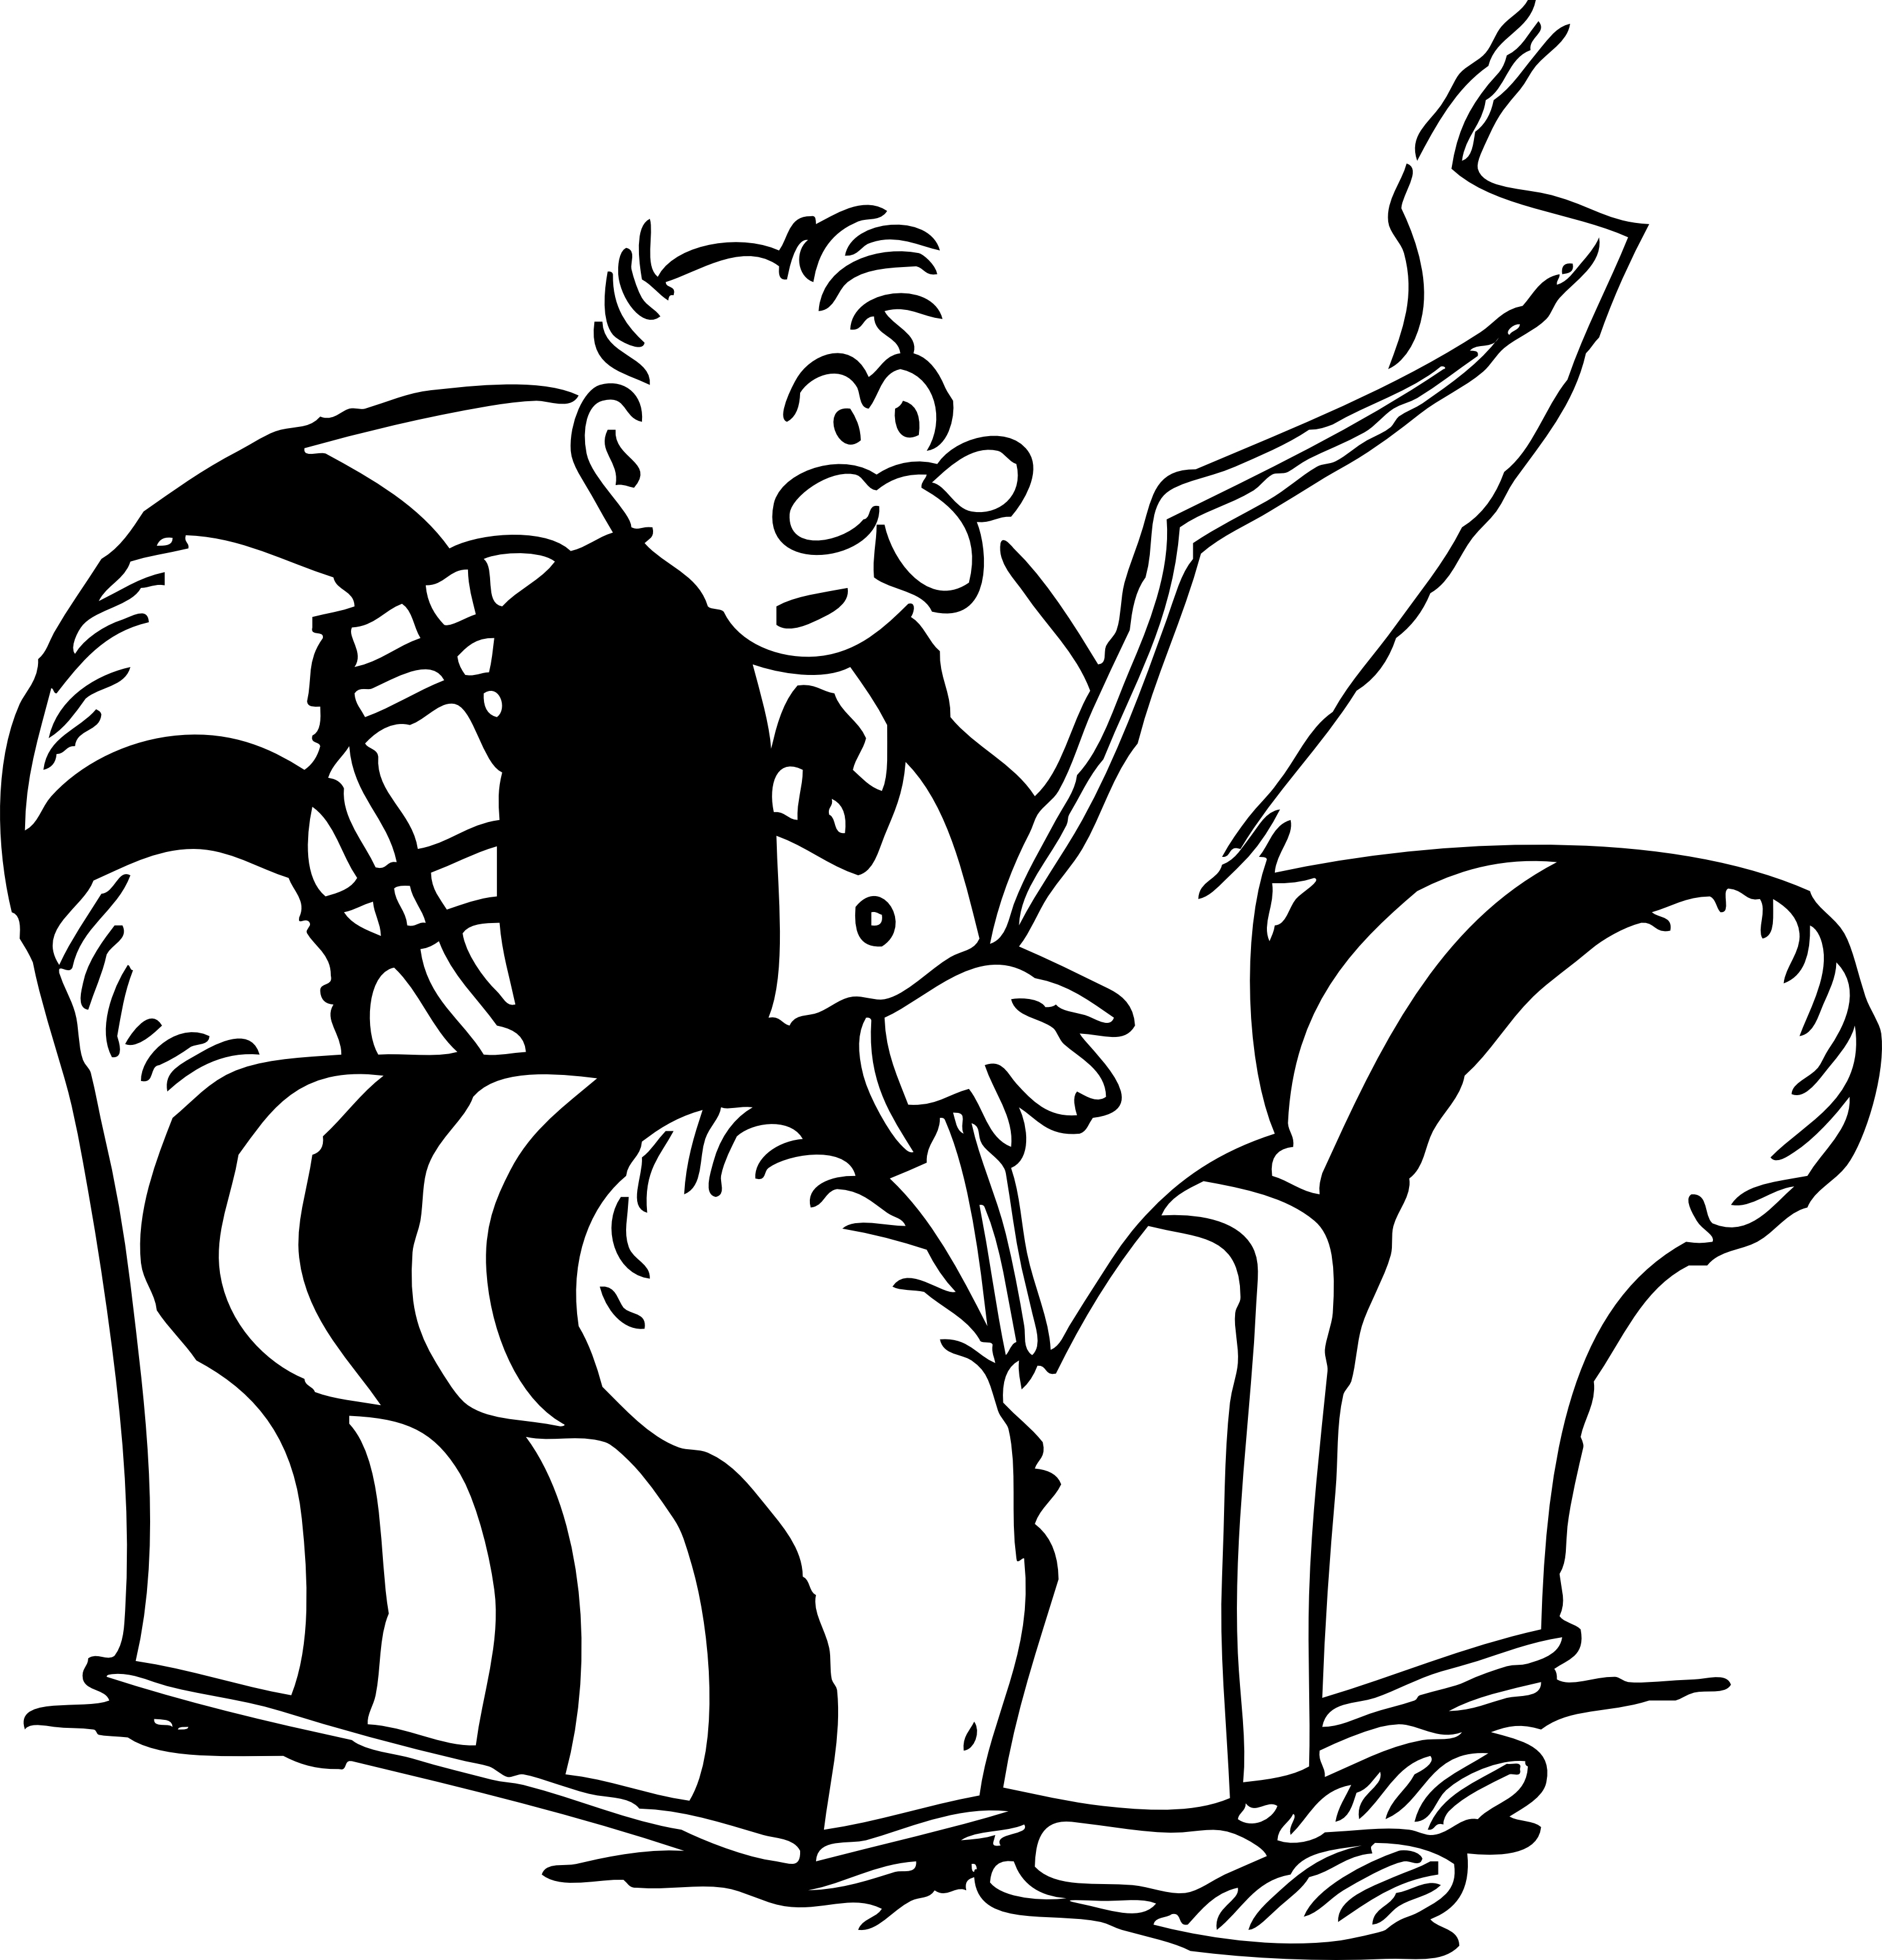 Retro Clipart Of A Man Reading Interesting News From A Newspaper